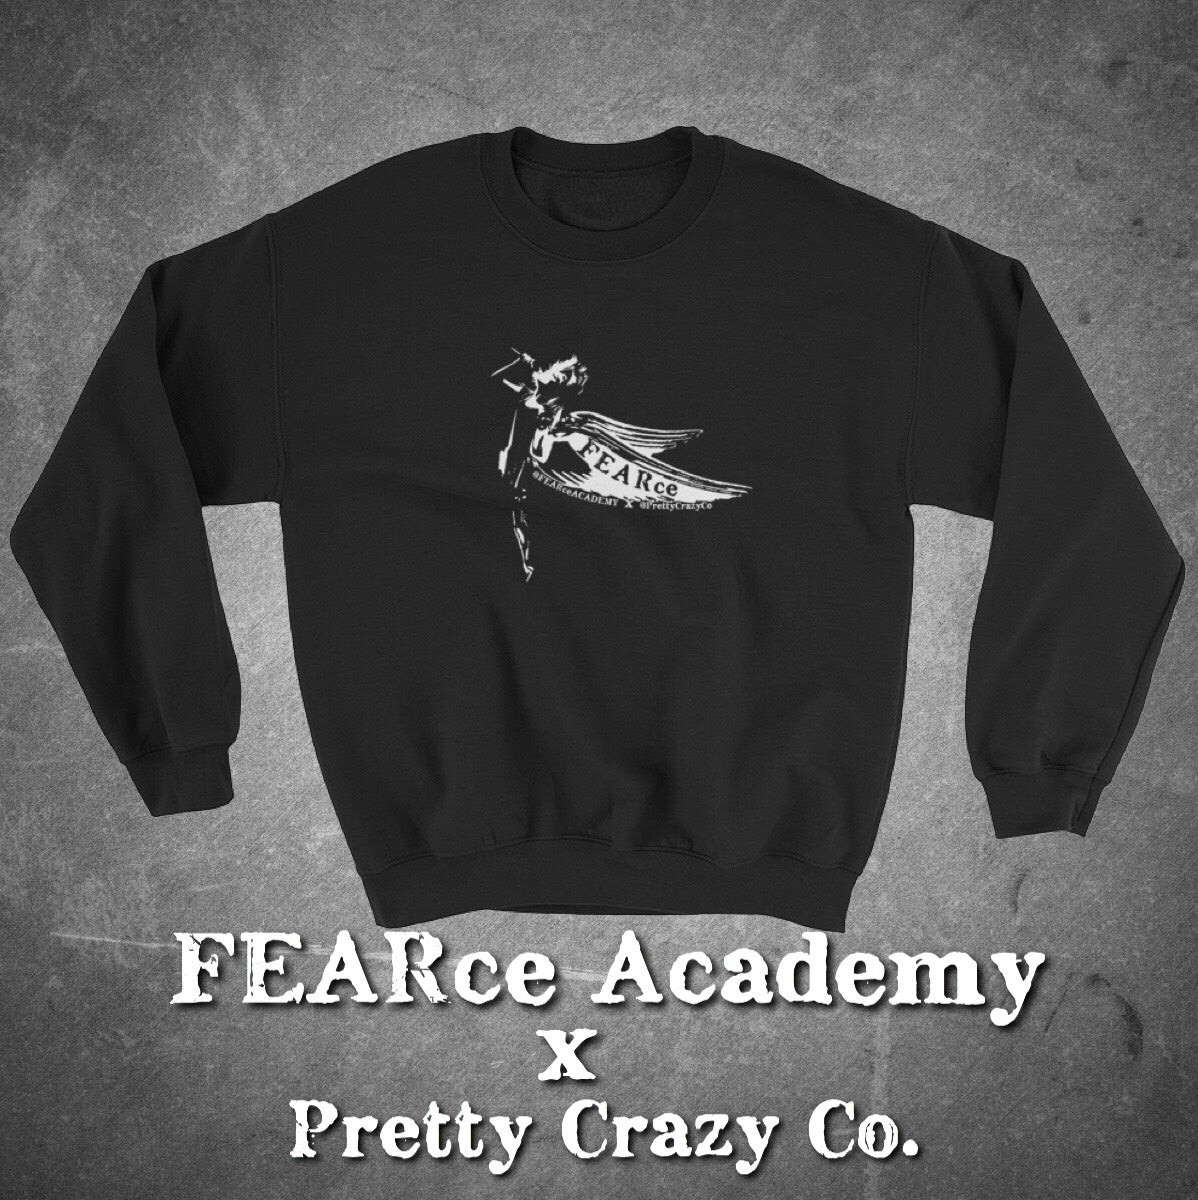 Are You FEARce? - Pretty Crazy Co. x FEARce Academy Collaboration